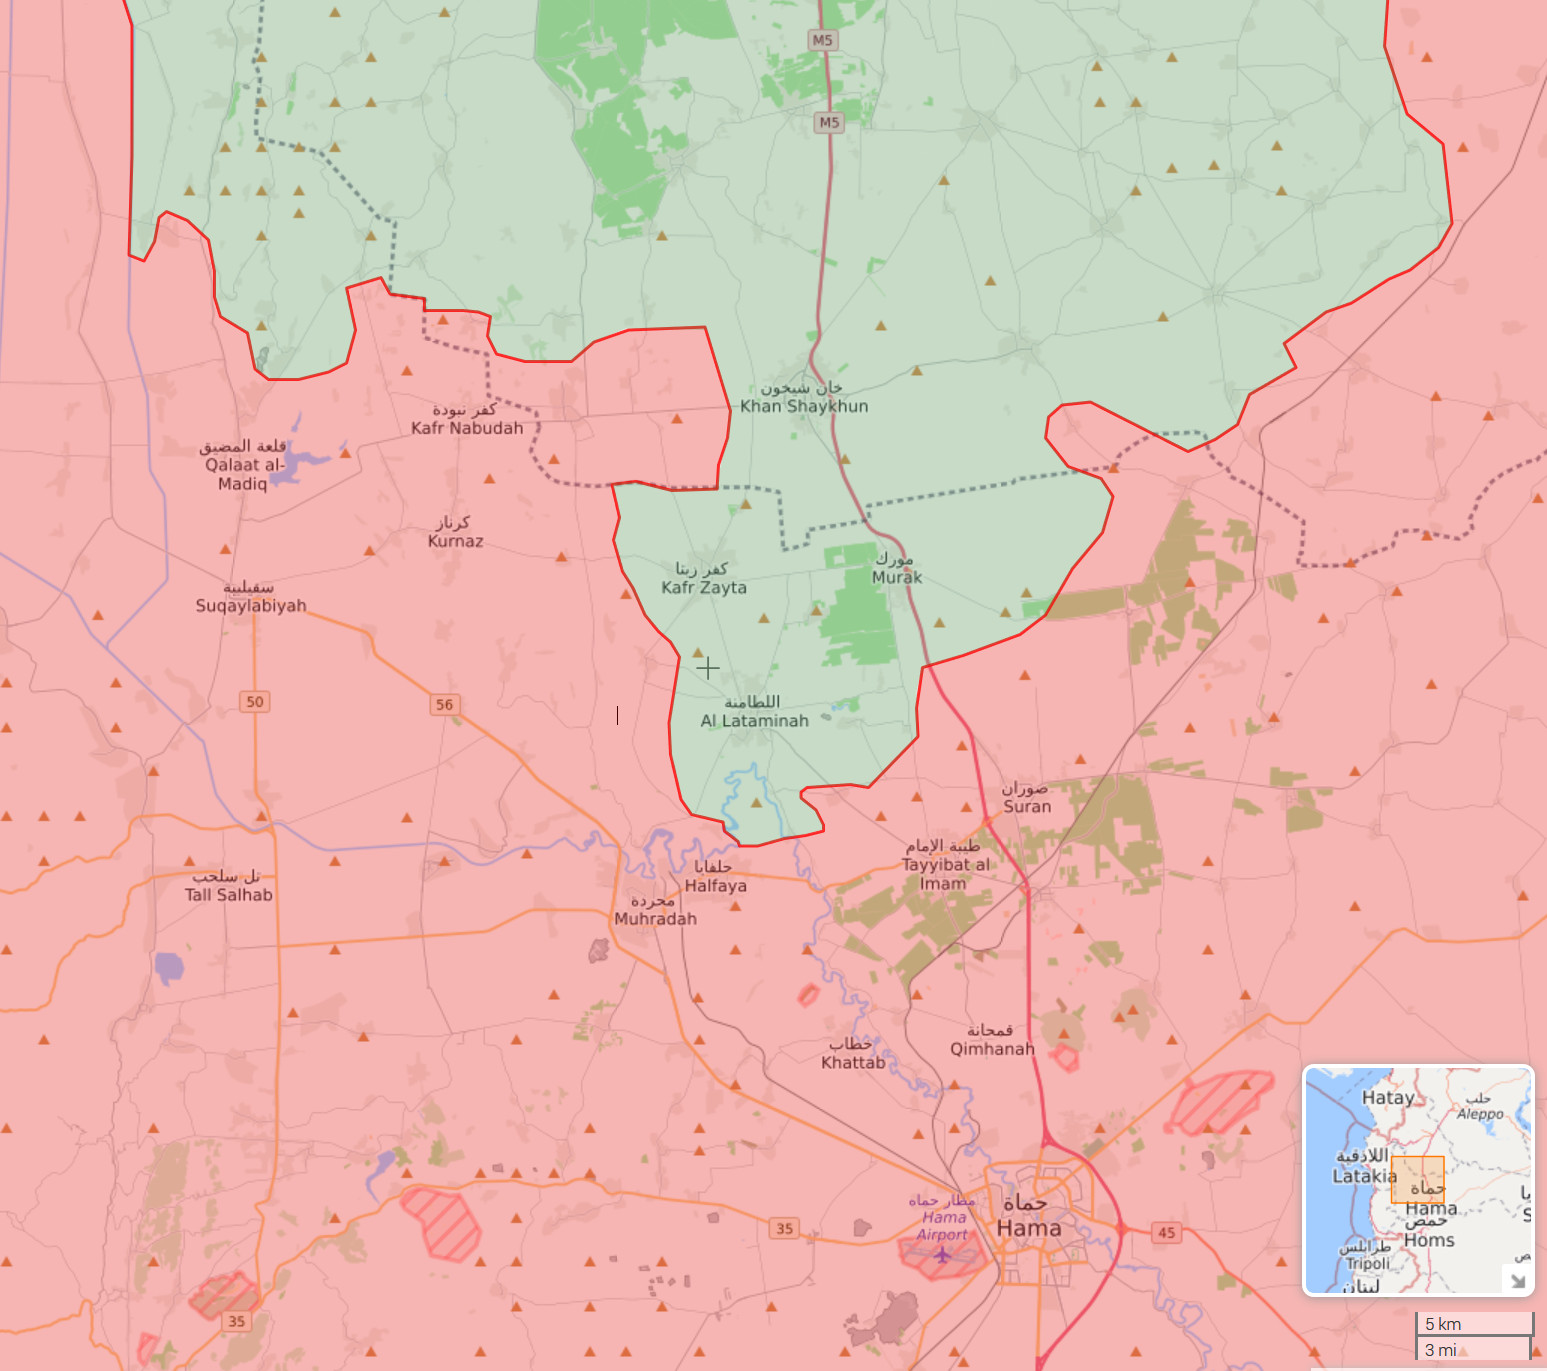 North Hama Front - August 15 2019